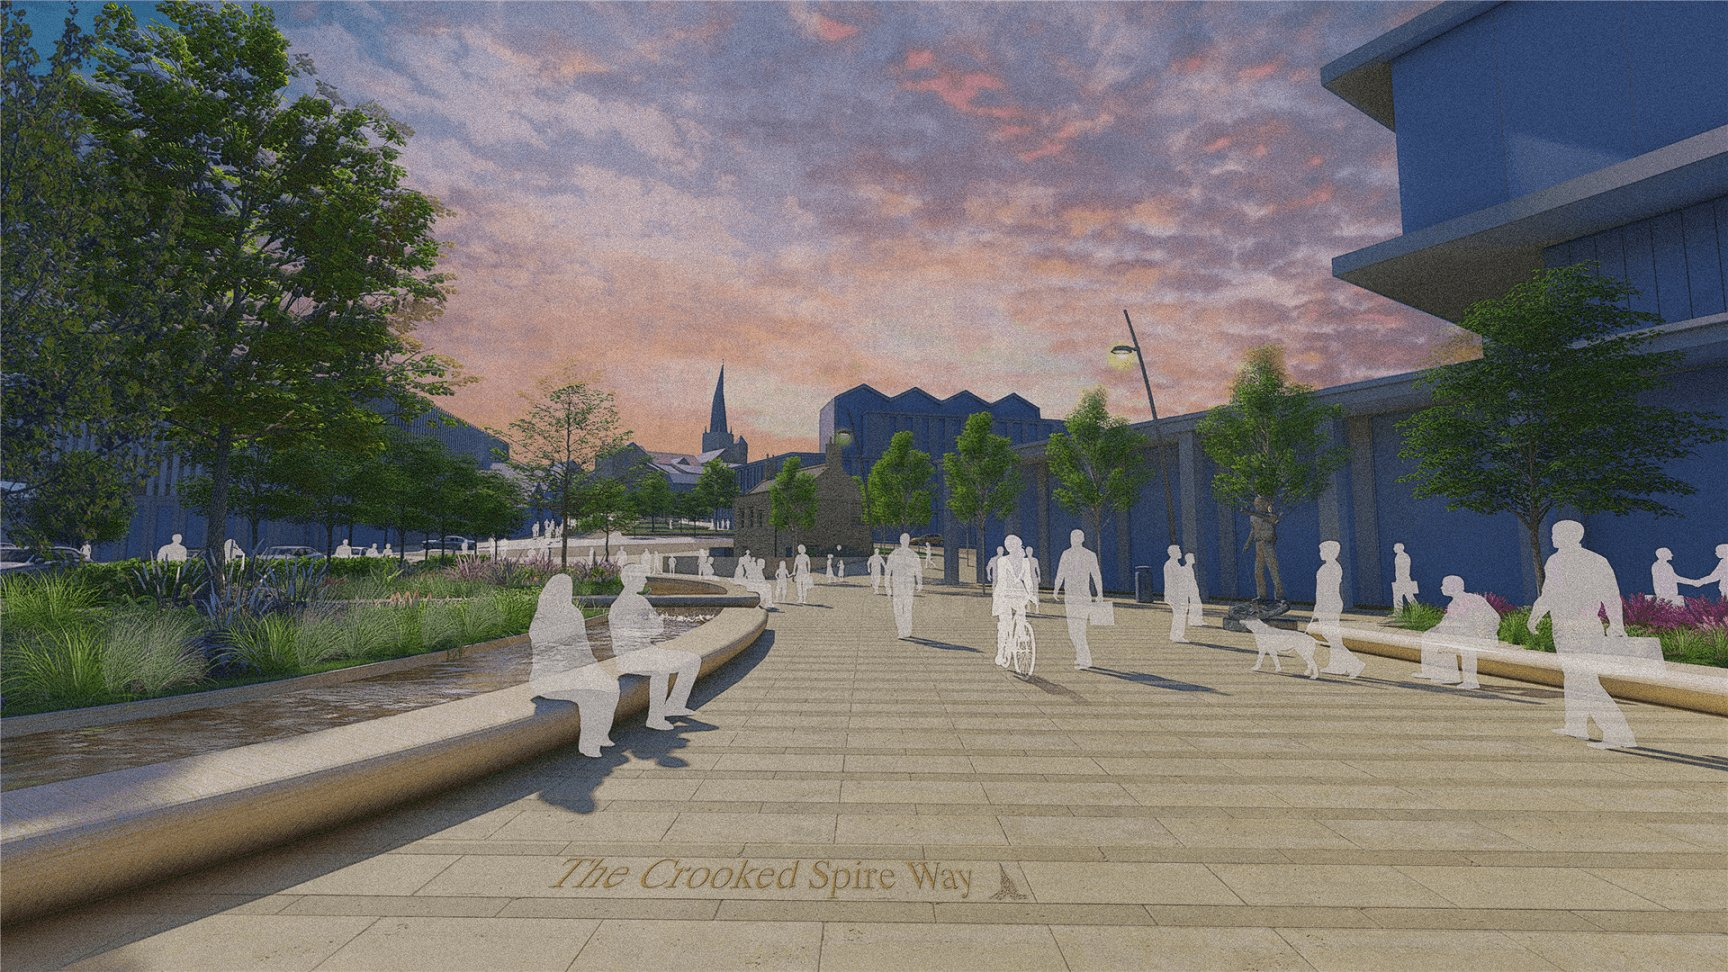 Ambitious regeneration plans to be considered by Chesterfield Borough Council